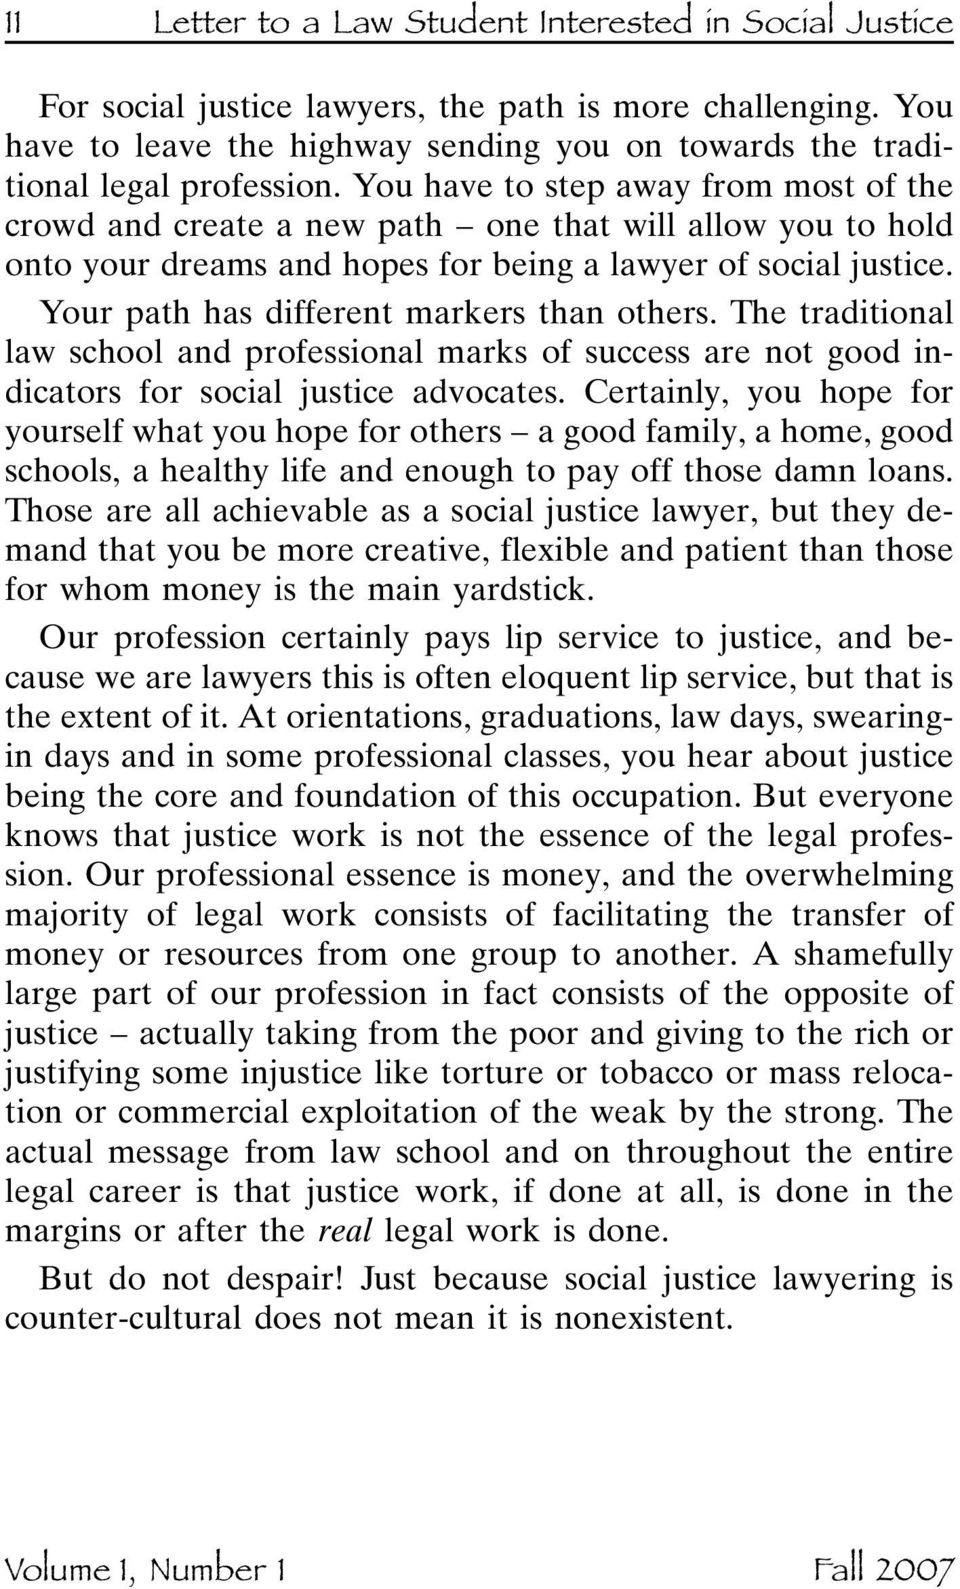 Your path has different markers than others. The traditional law school and professional marks of success are not good indicators for social justice advocates.